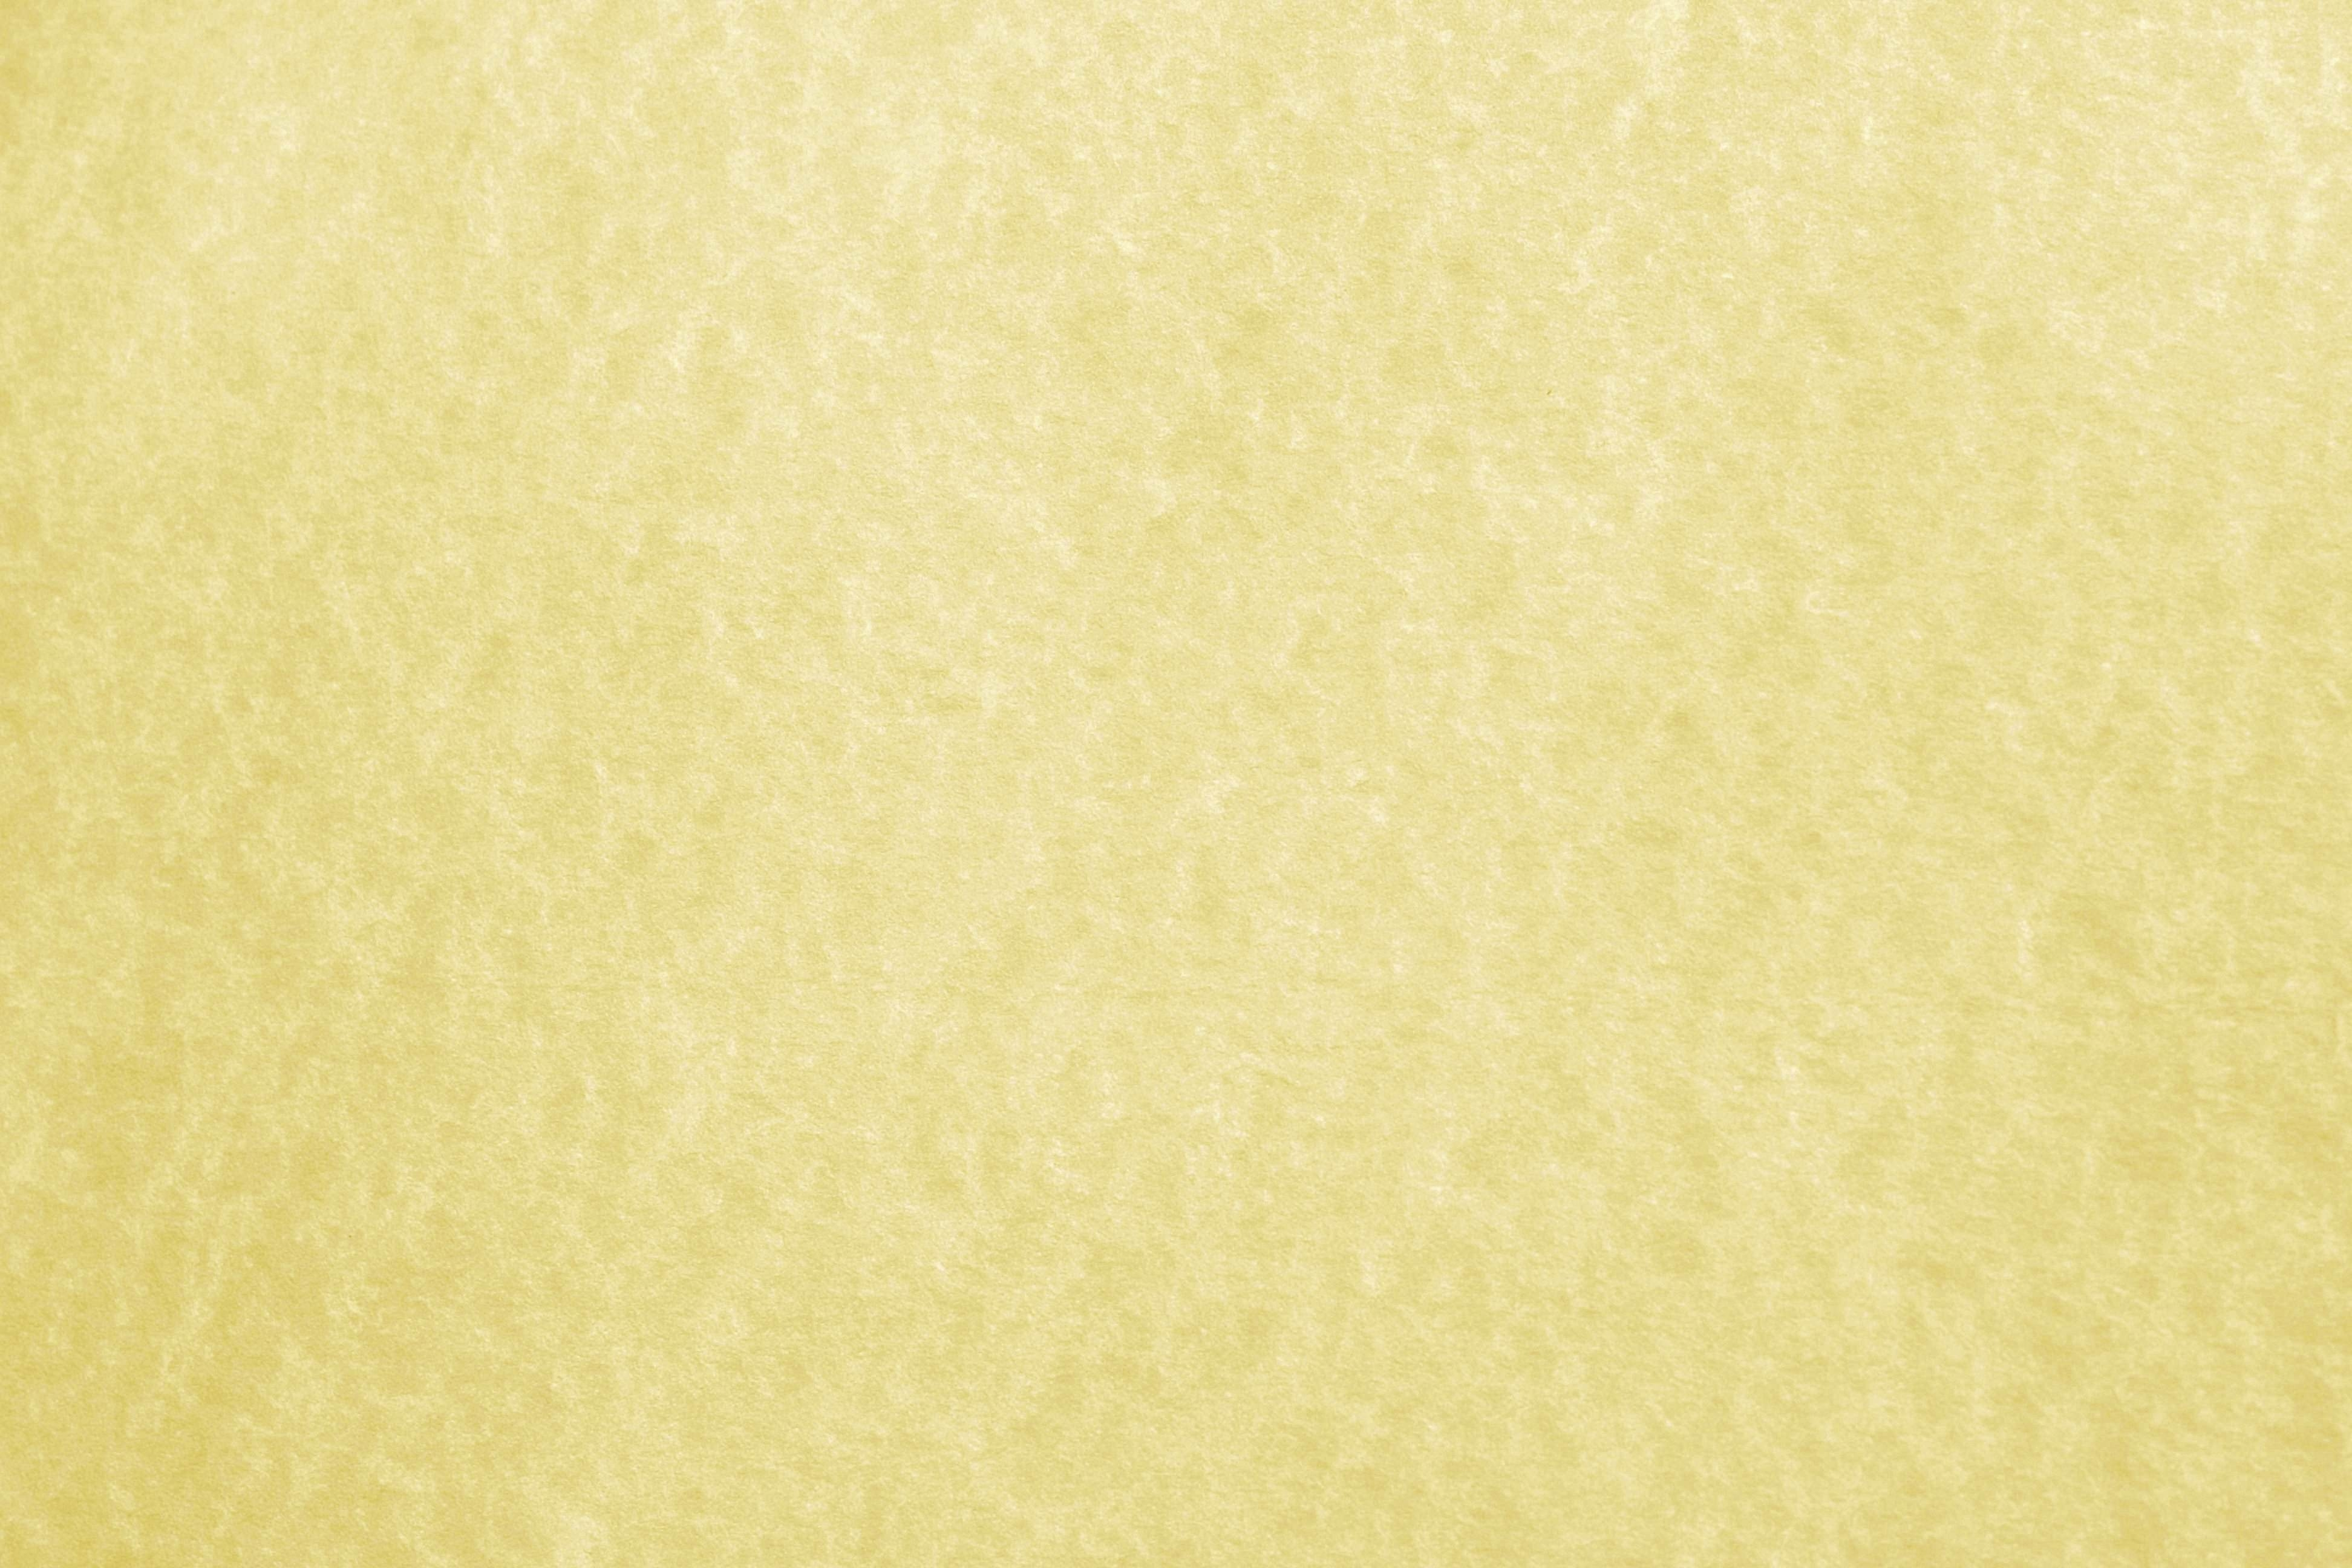 Parchment Paper Texture Free Graph HD Wallpaper